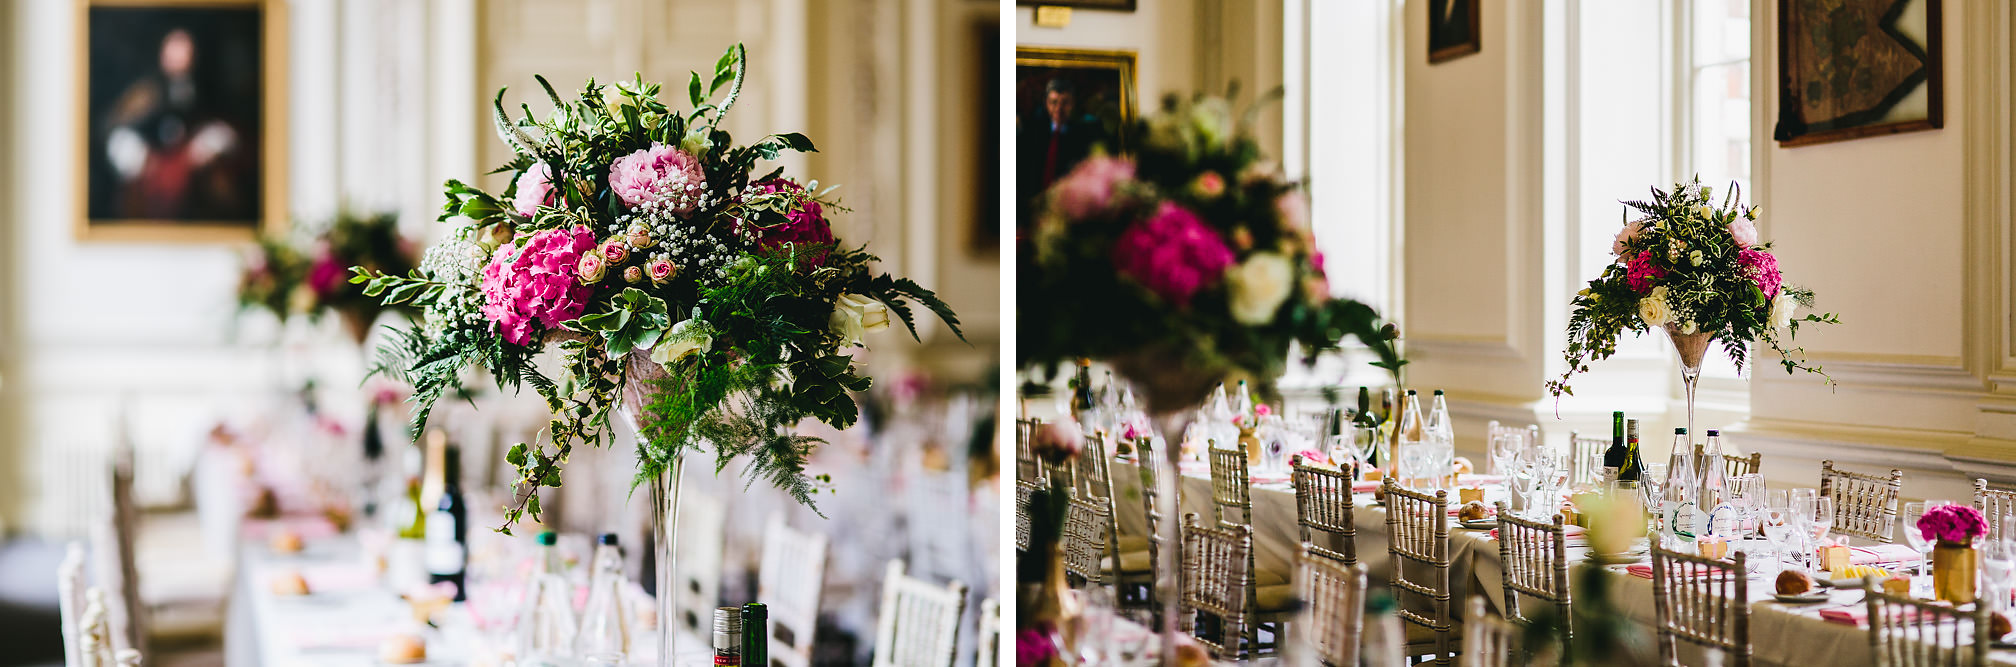 Table Wedding Flowers at Kimbolton Castle